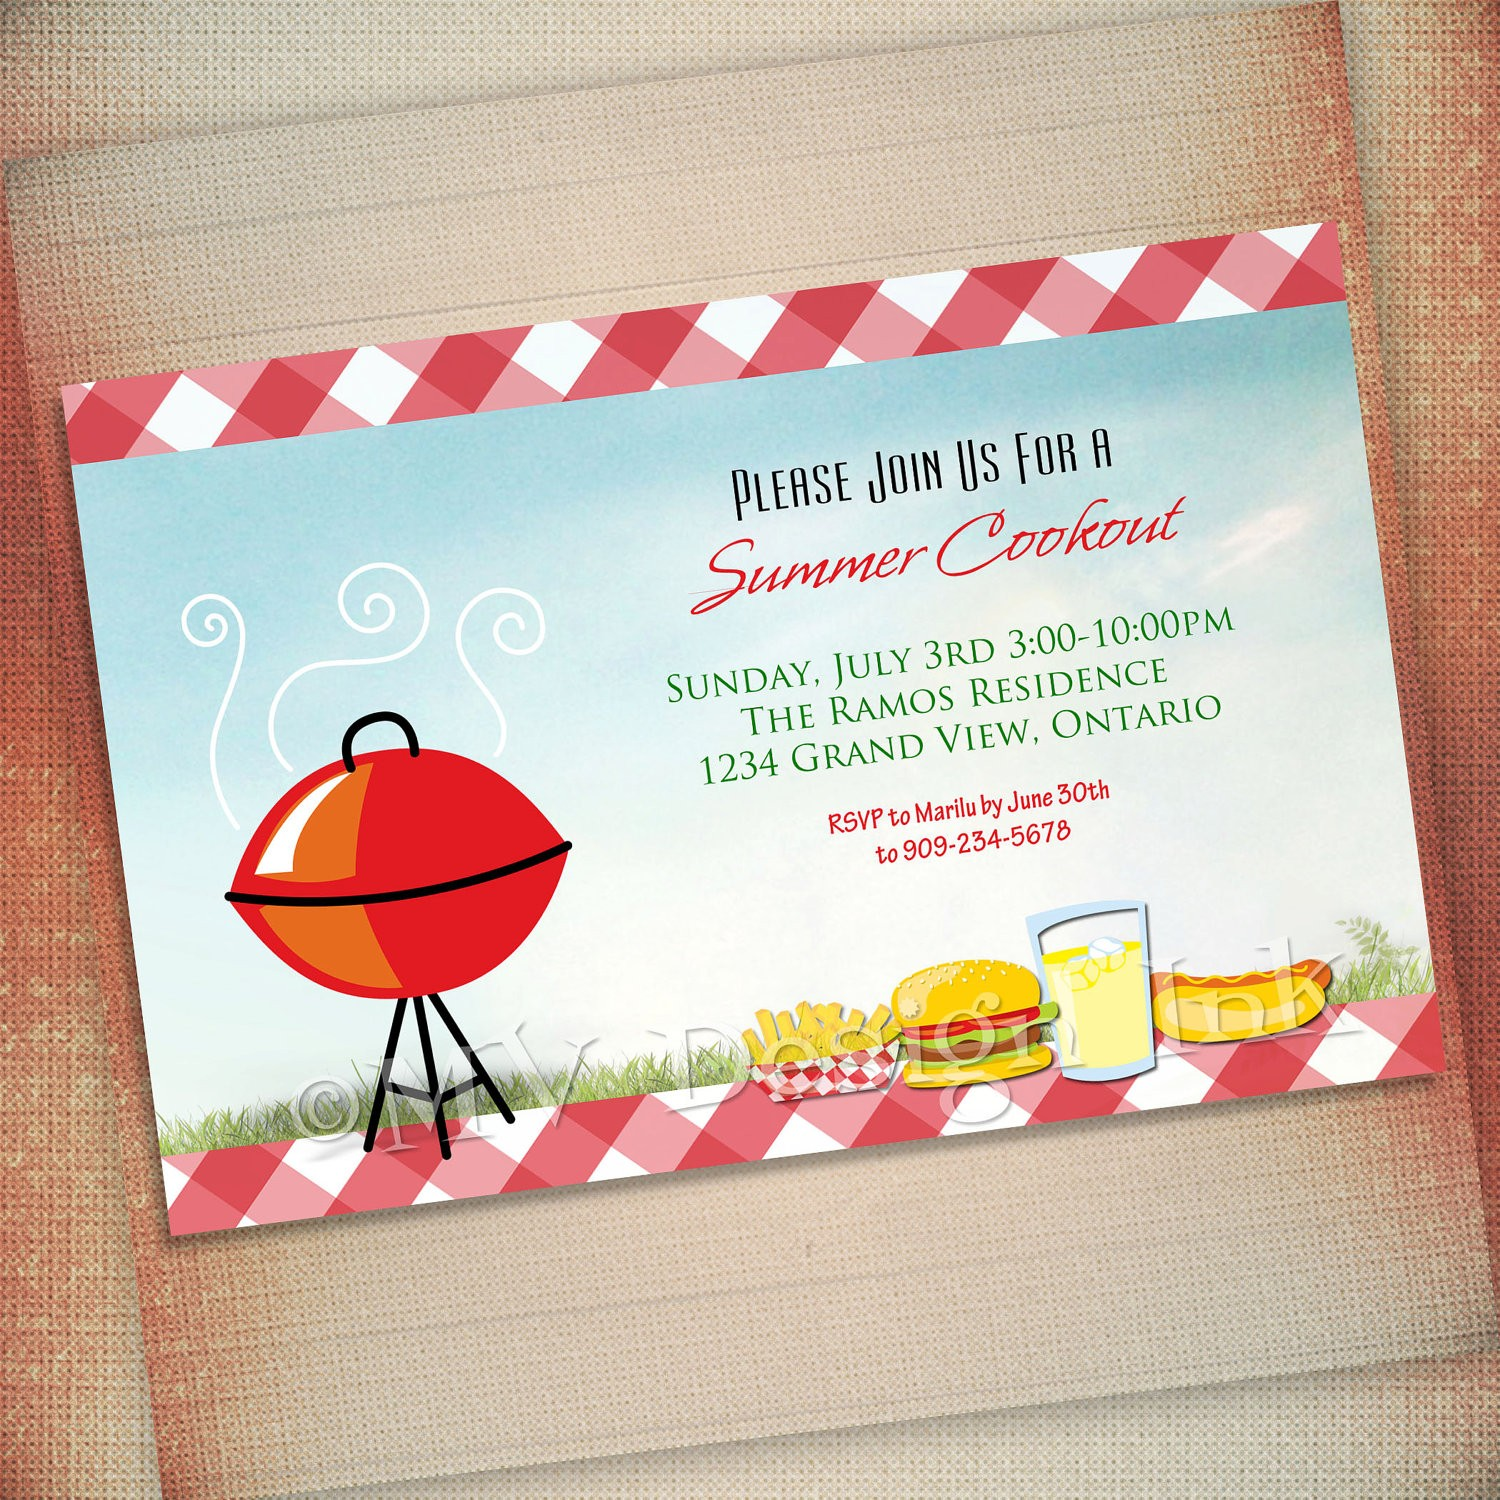 birthday cookout invitation templates ; invitation-templates-bbq-valid-summer-cookout-invitation-bbq-image-of-invitation-templates-bbq